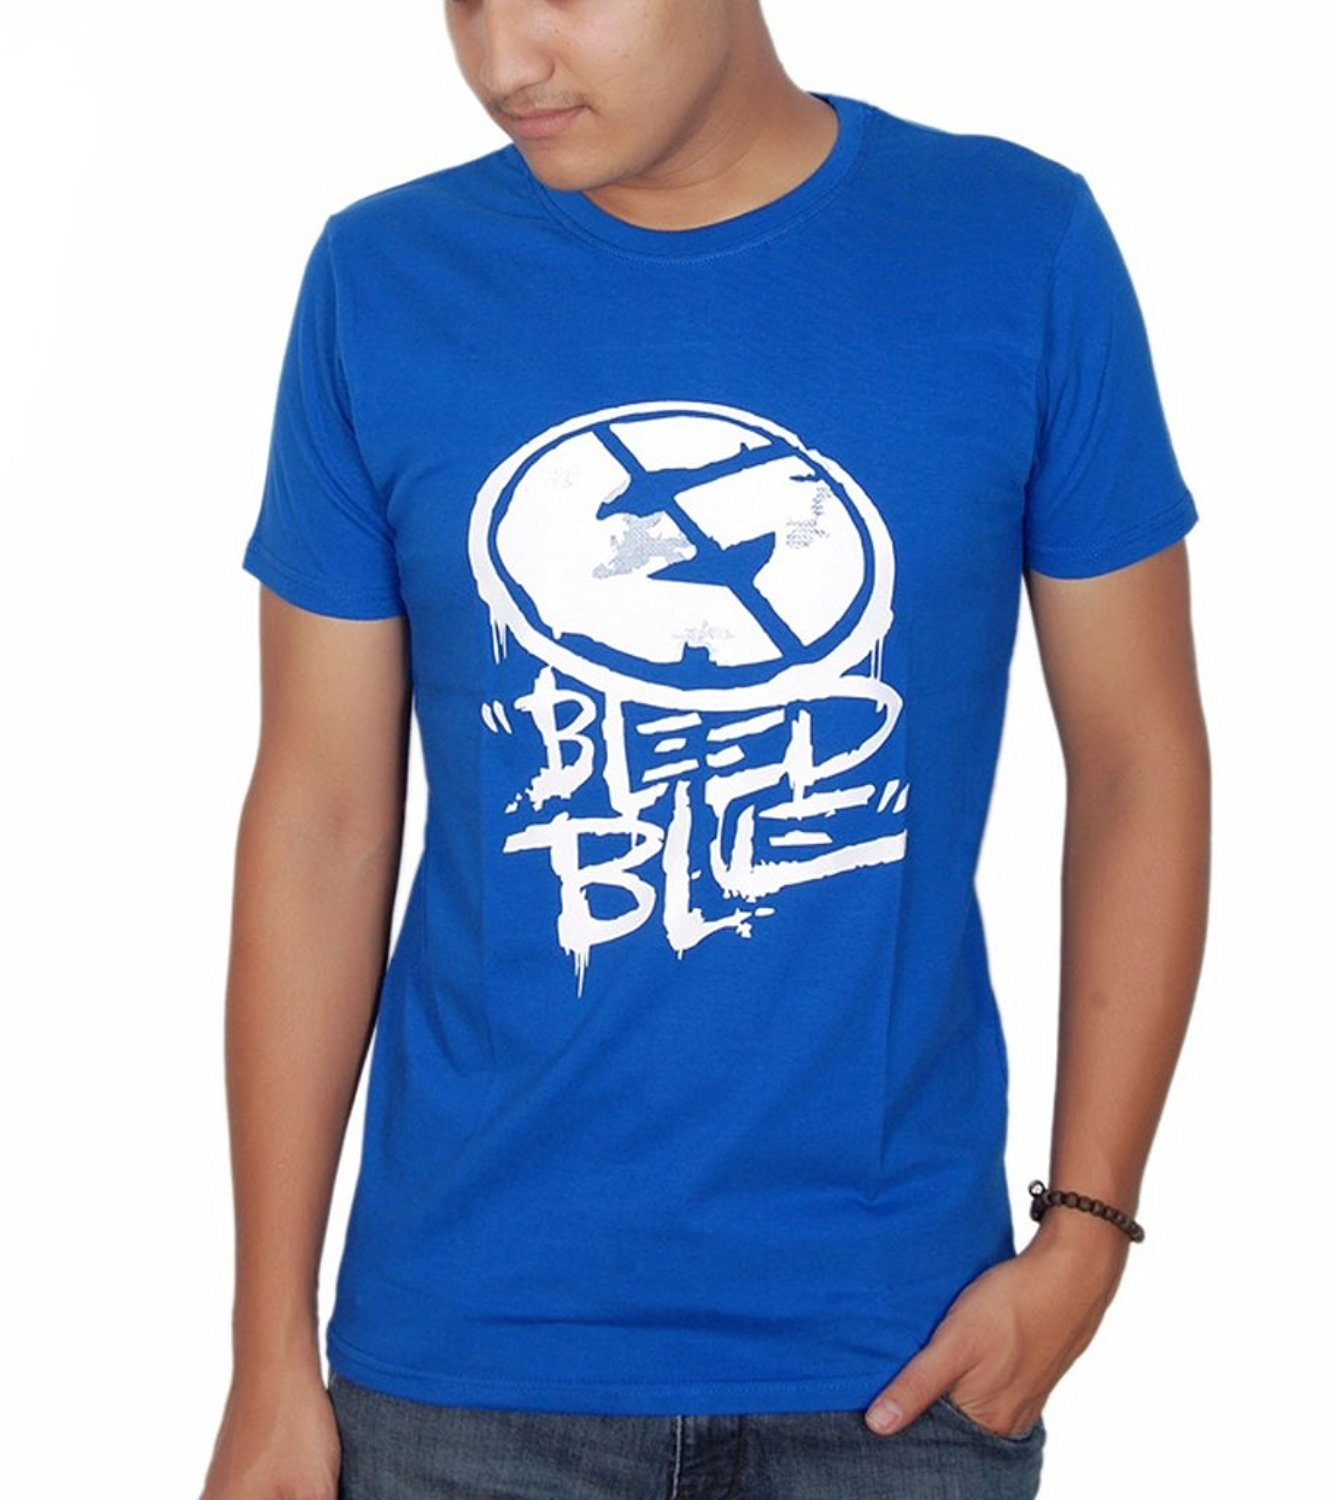 inukshukindia Inukshuk Men's Cotton T-shirt (bleed Blue)